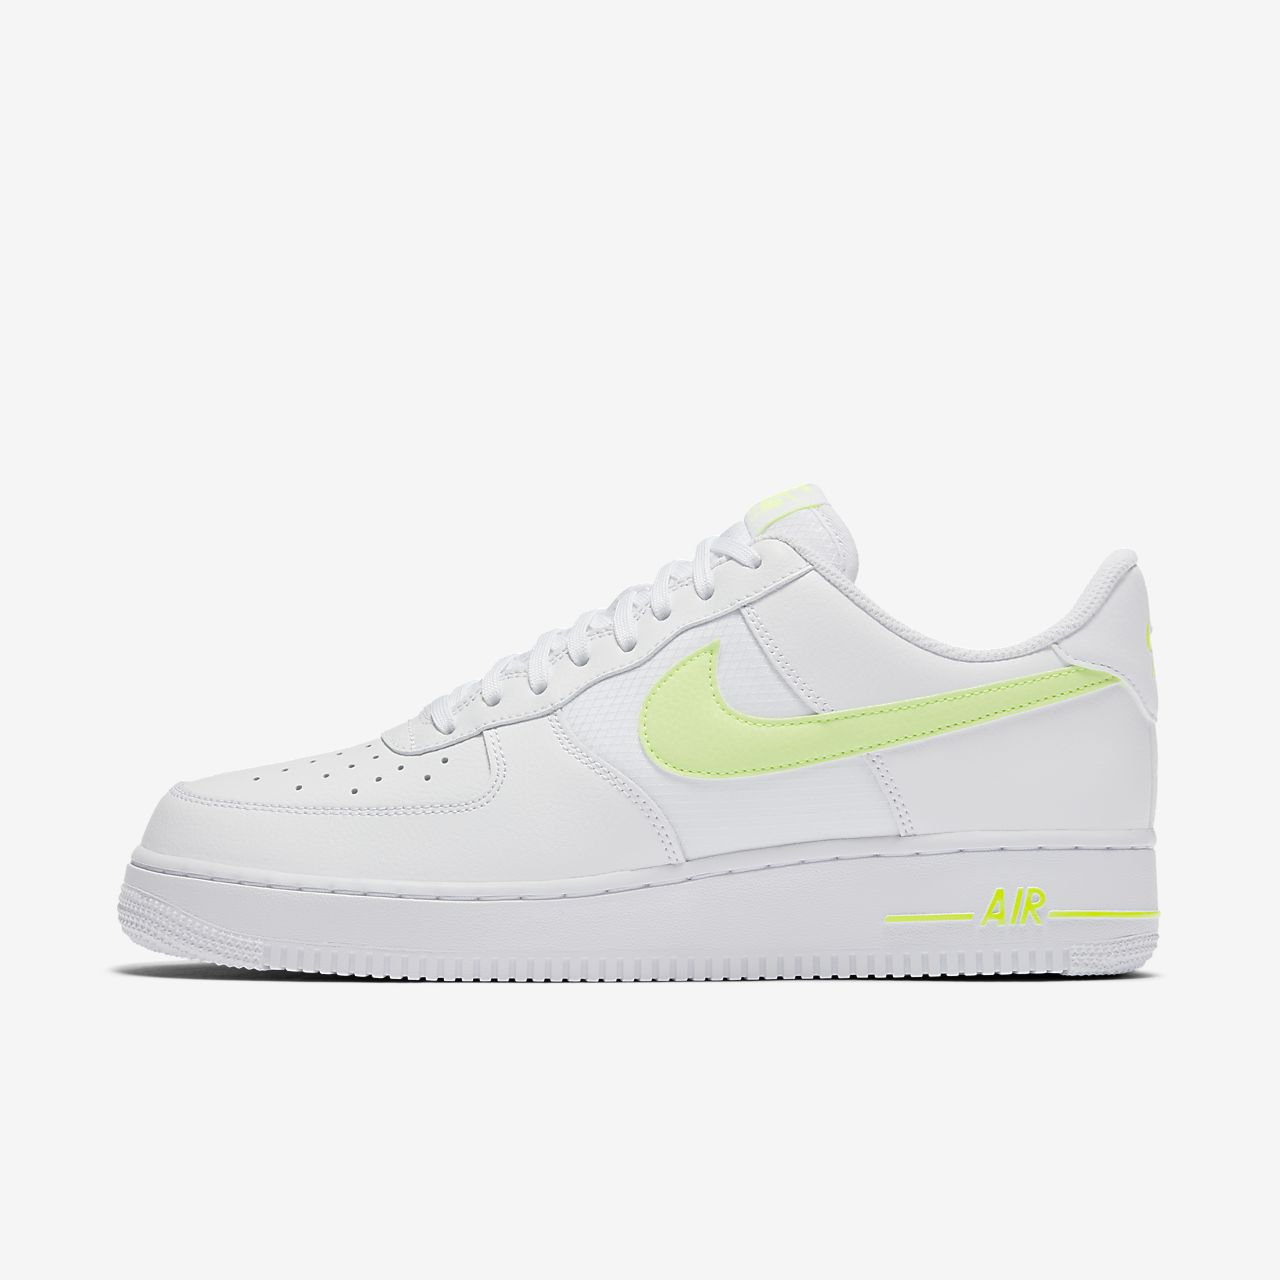 ff363d4ca9c Chaussure Nike Air Force 1  07 LV8 pour Homme. Nike.com CA